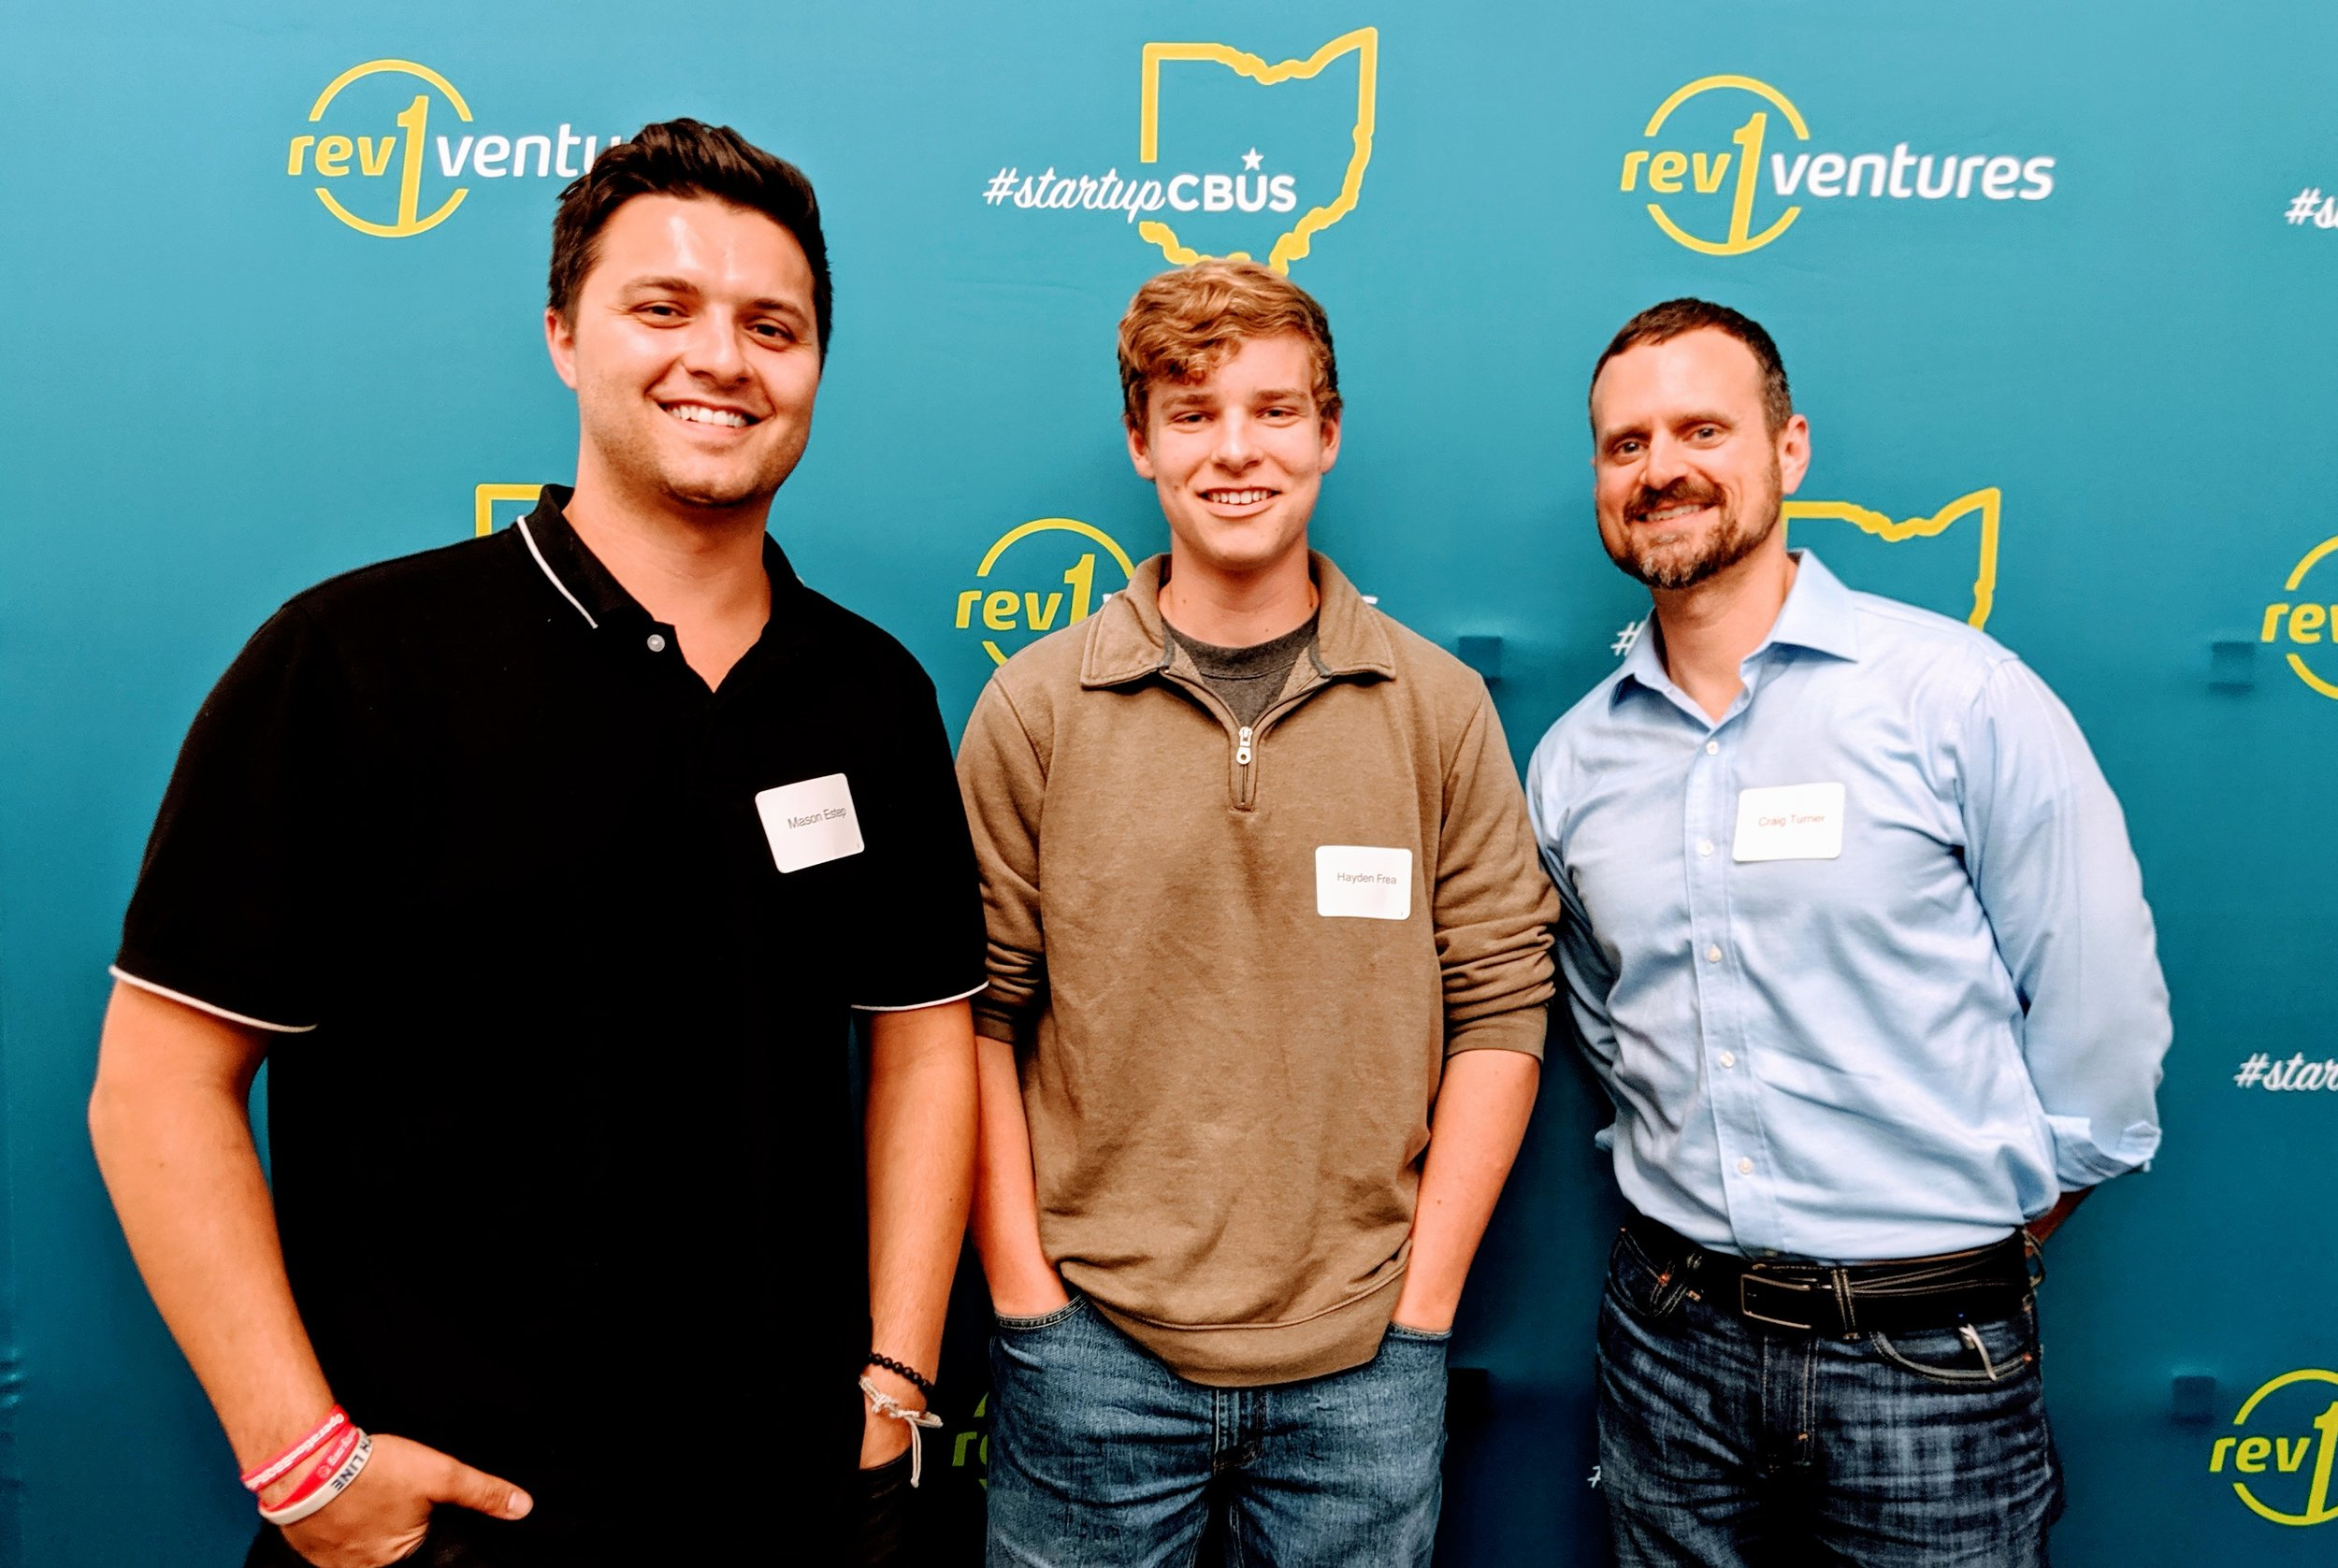 Rev 1 Ventures   Customer Learning Lab . Mason, Hayden, Craig. July 16, 2019.